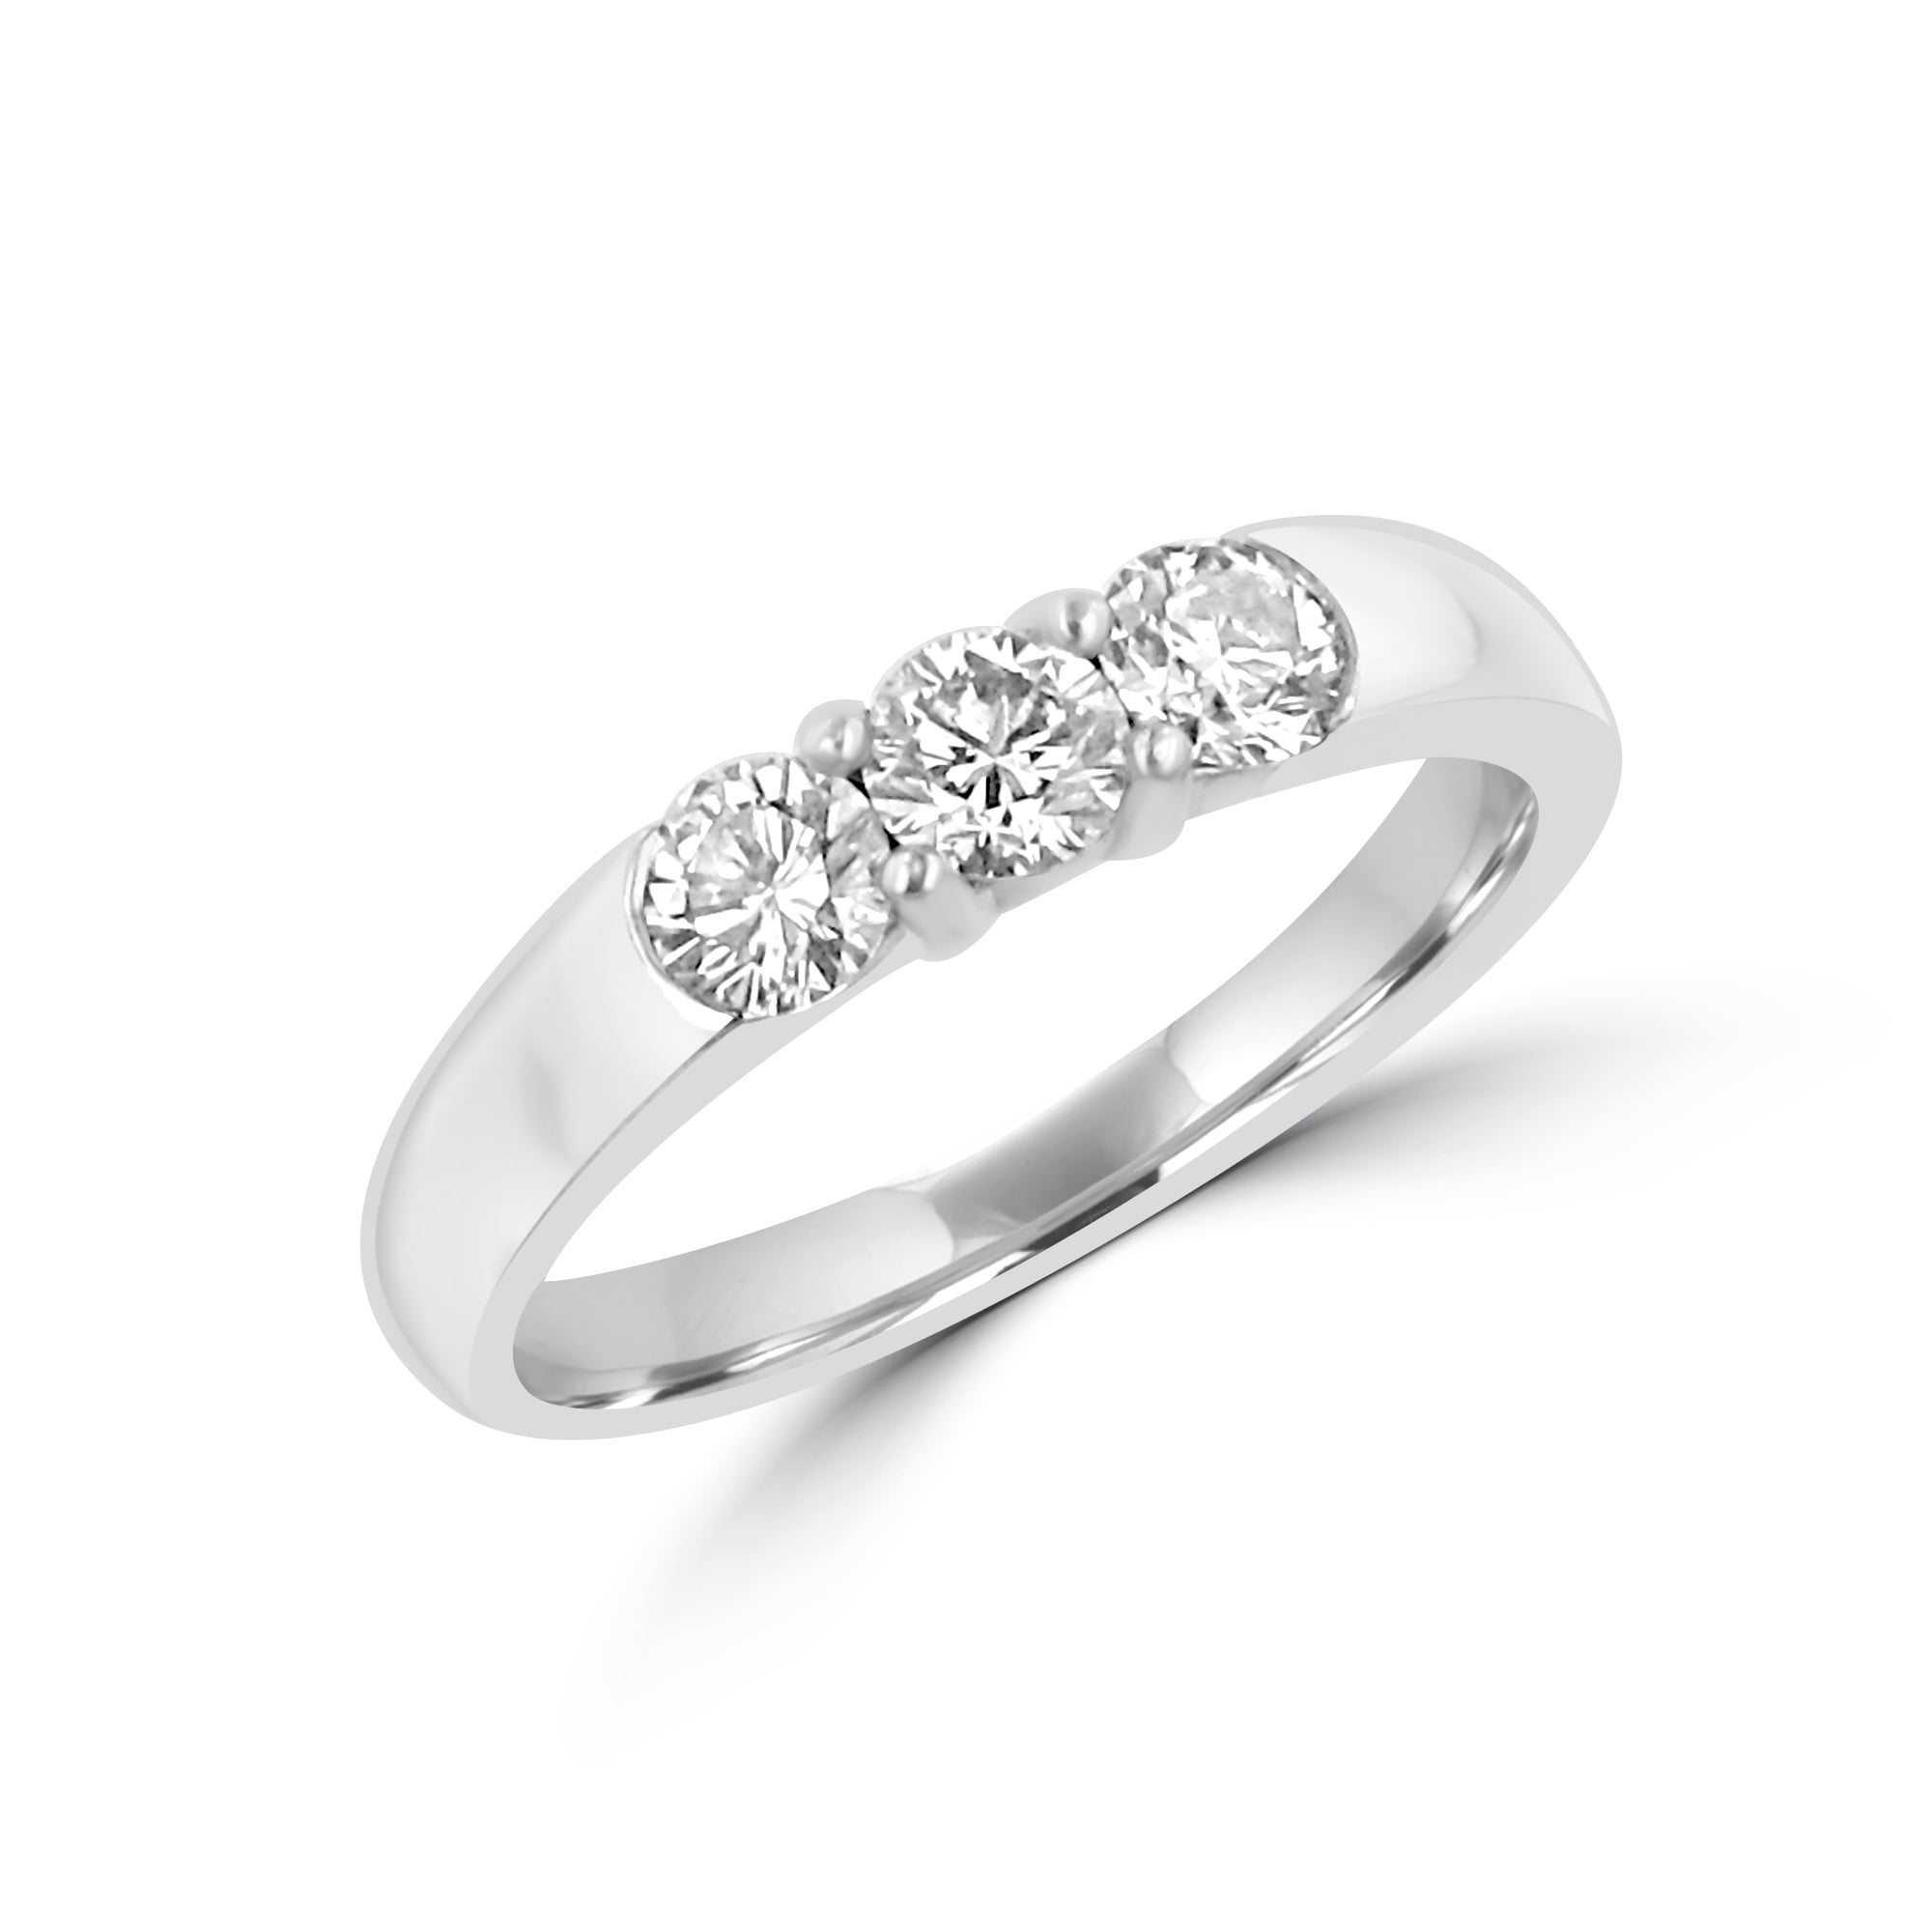 Pre-owned Trilogy Diamond Ring In Platinum